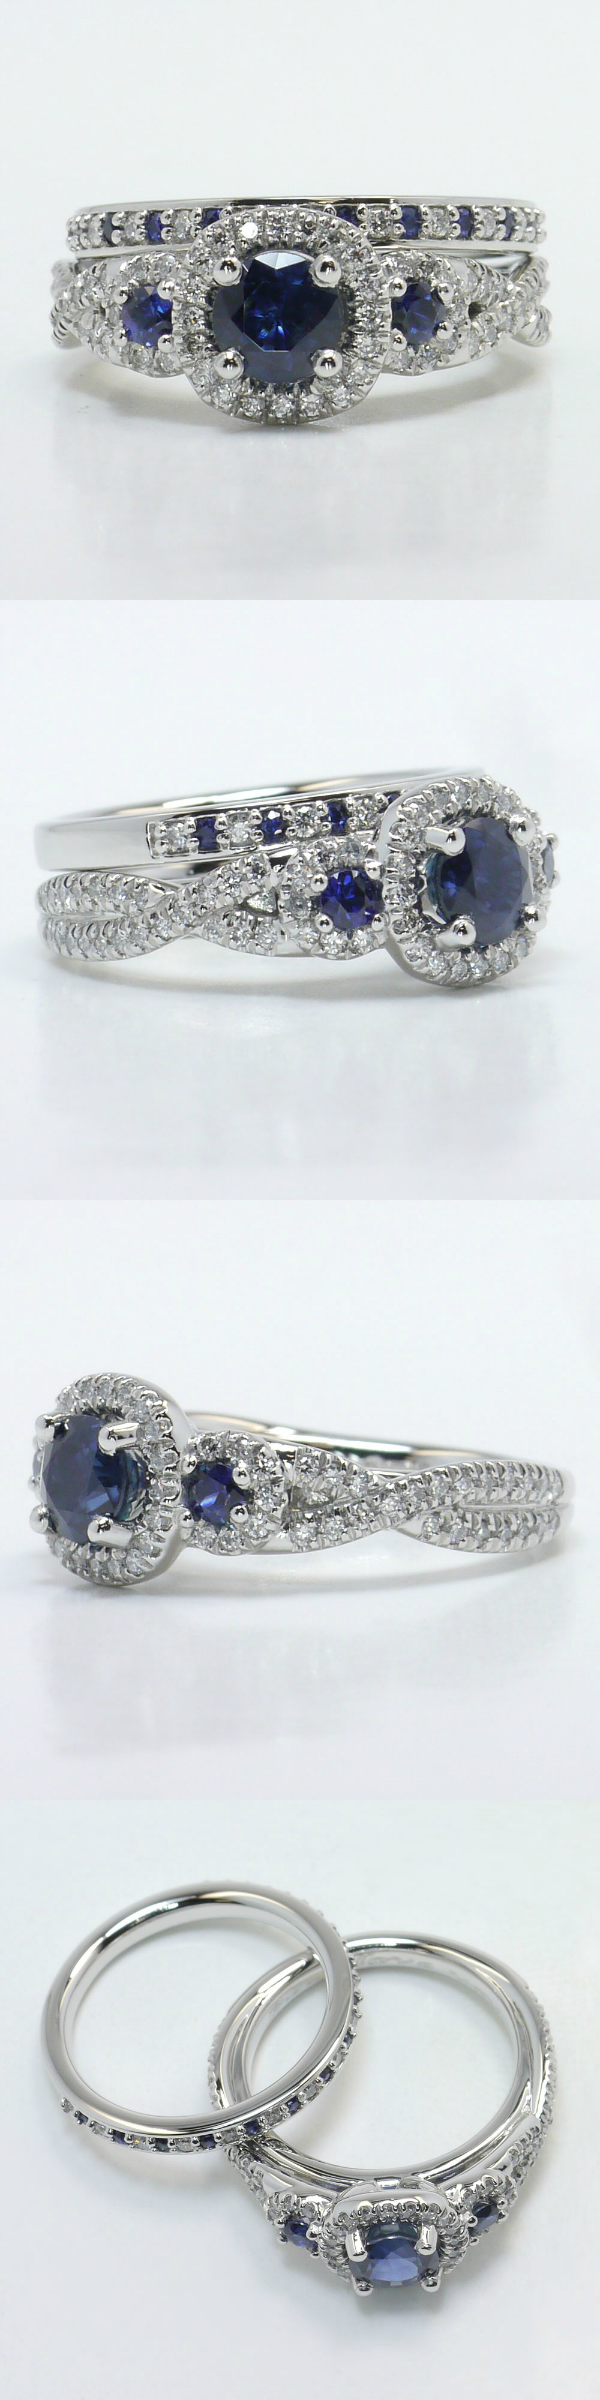 cost ring editor faberge devotion false subsampling jewellery scale crop product sapphire the cabochon upscale shop faberg